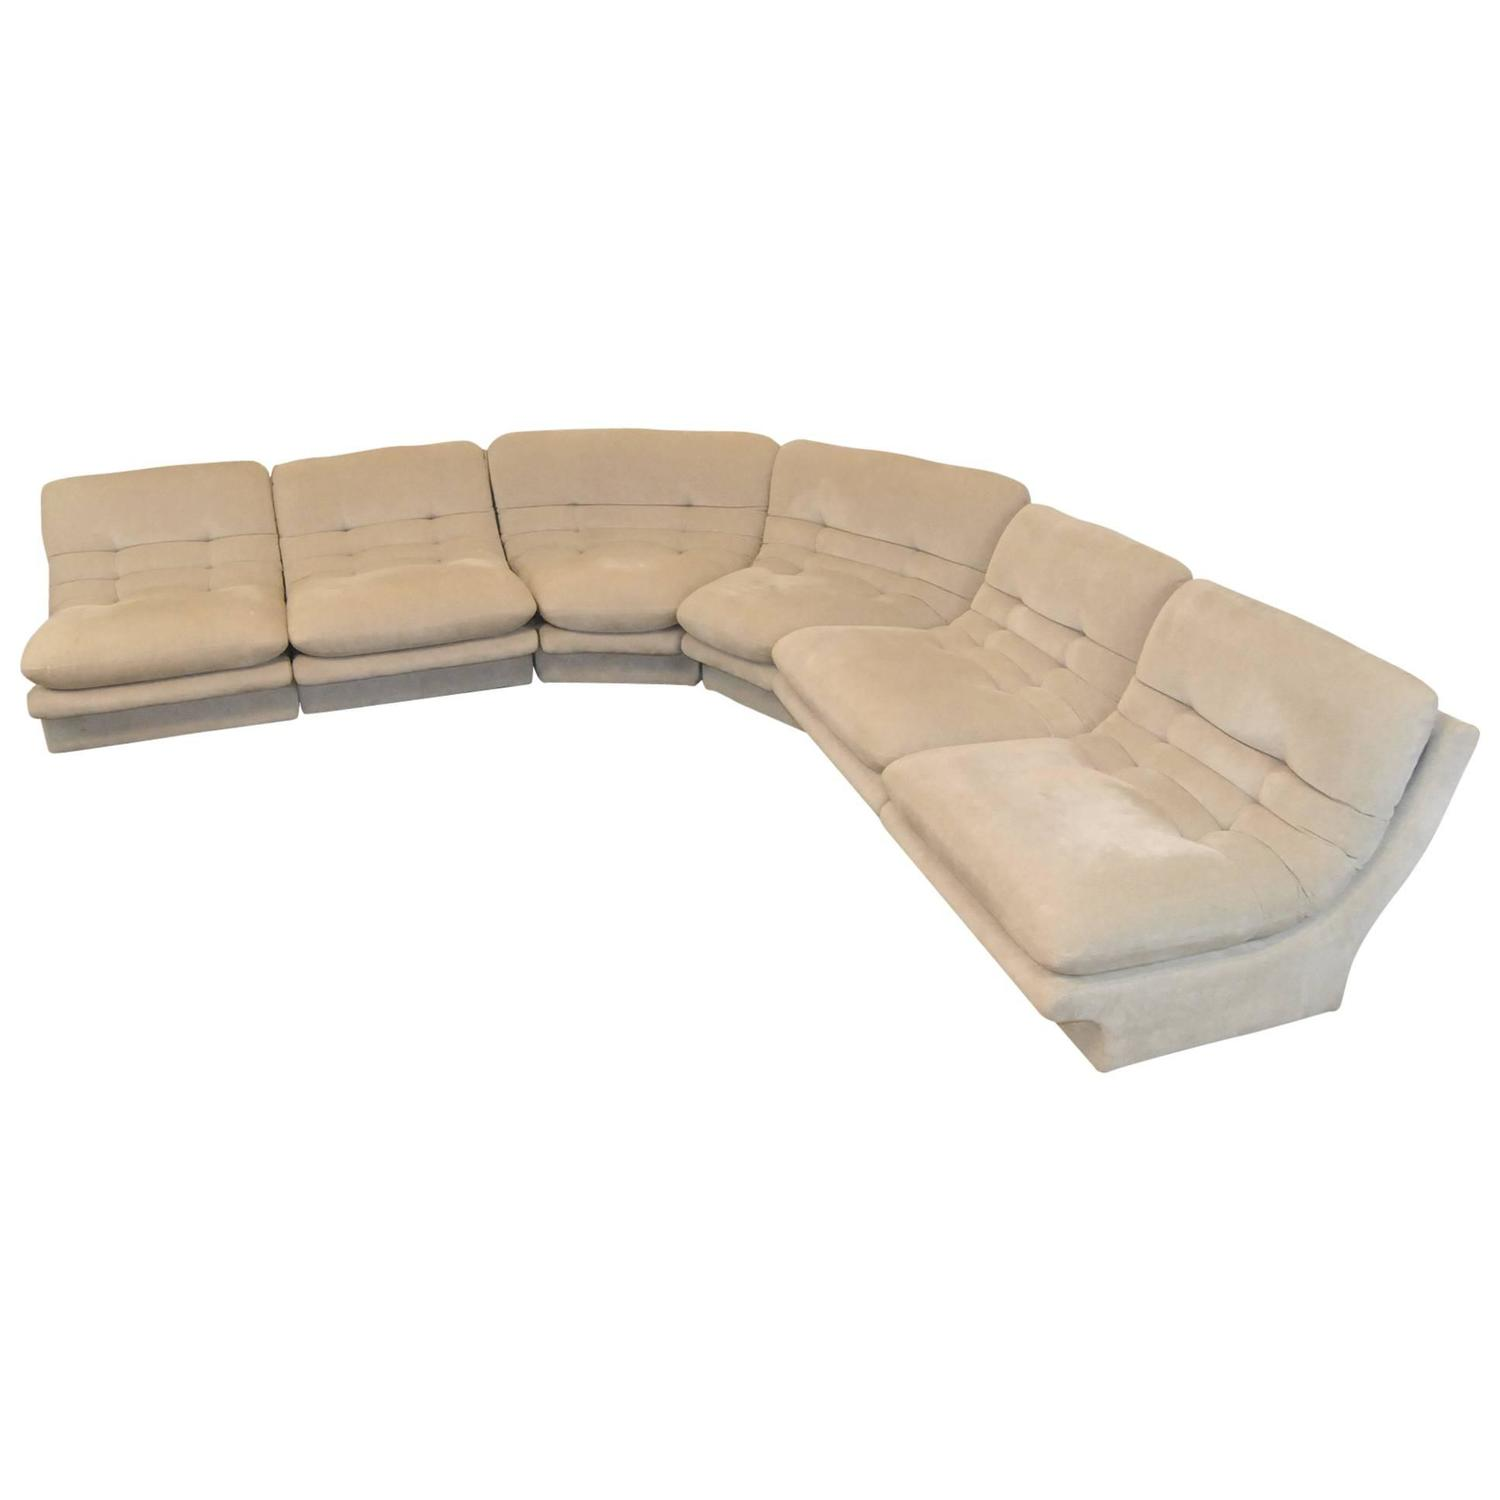 Dove grey six piece sectional sofa designed by vladimir for Dove grey sectional sofa